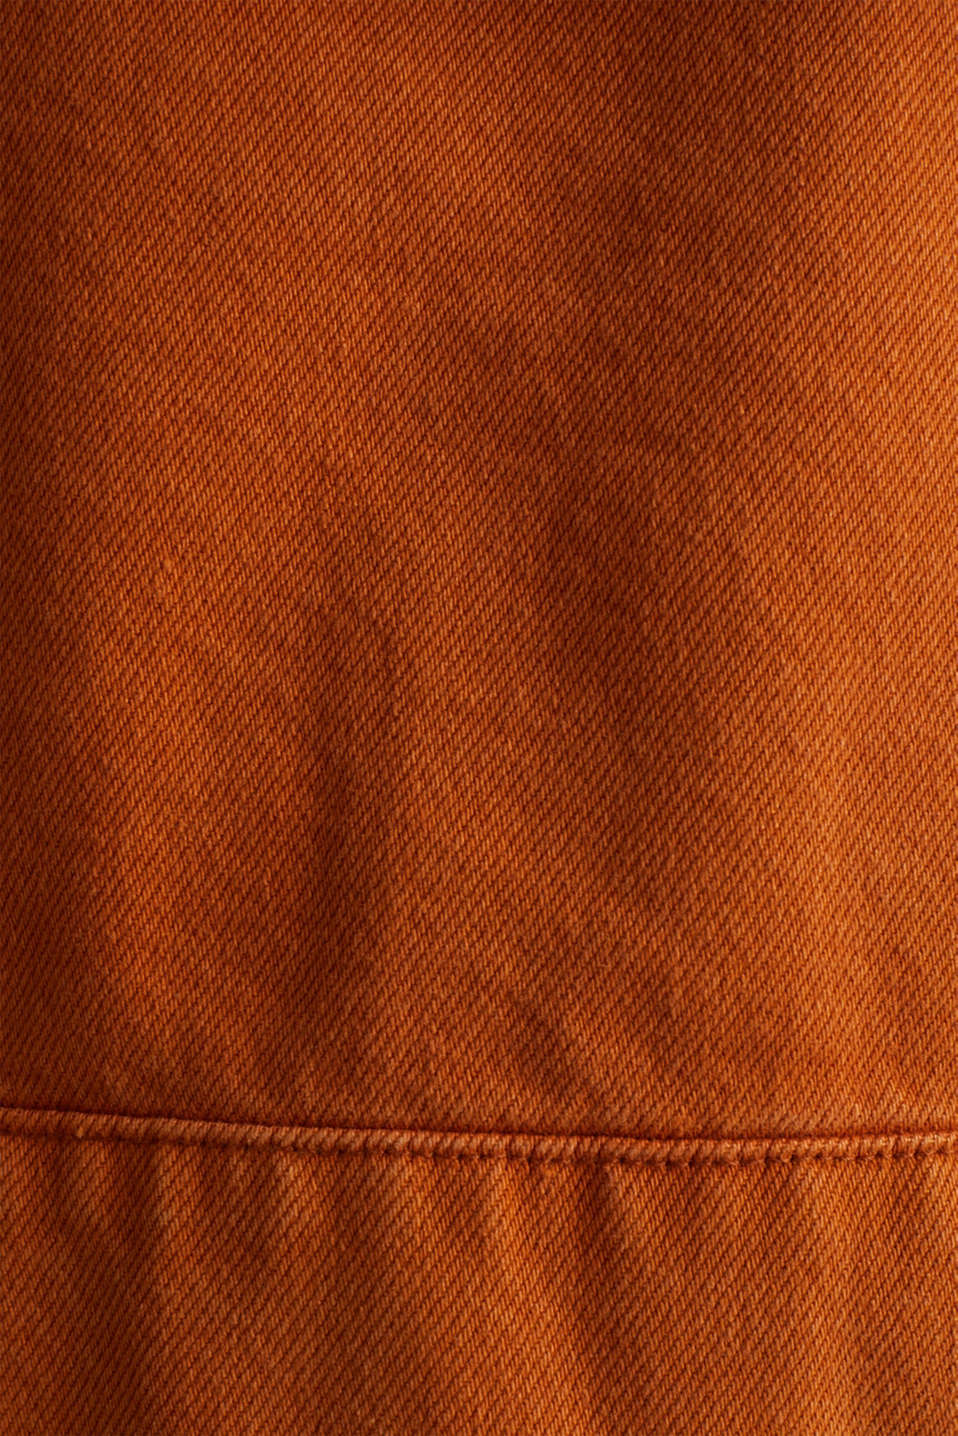 Short twill jacket with pockets, CINNAMON, detail image number 4